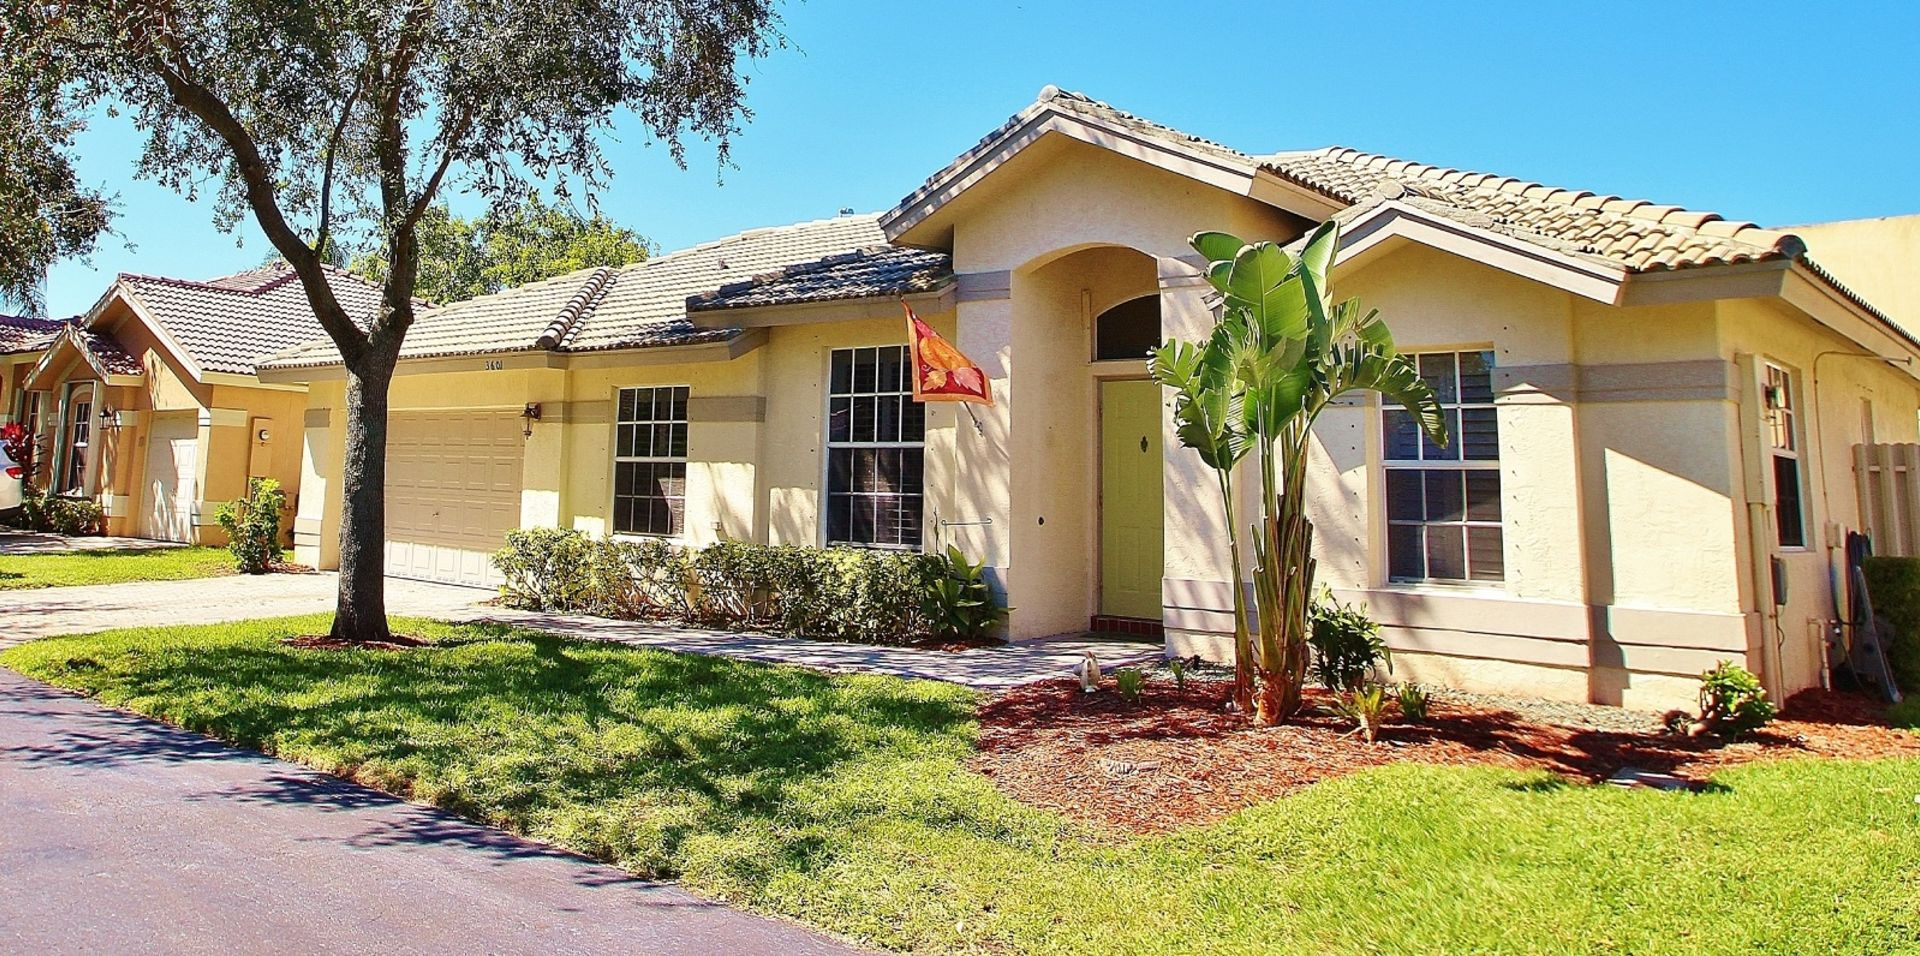 OASIS AT PALM AIRE 3/2 SPLIT HOME- SOLD IN 4 DAYS!